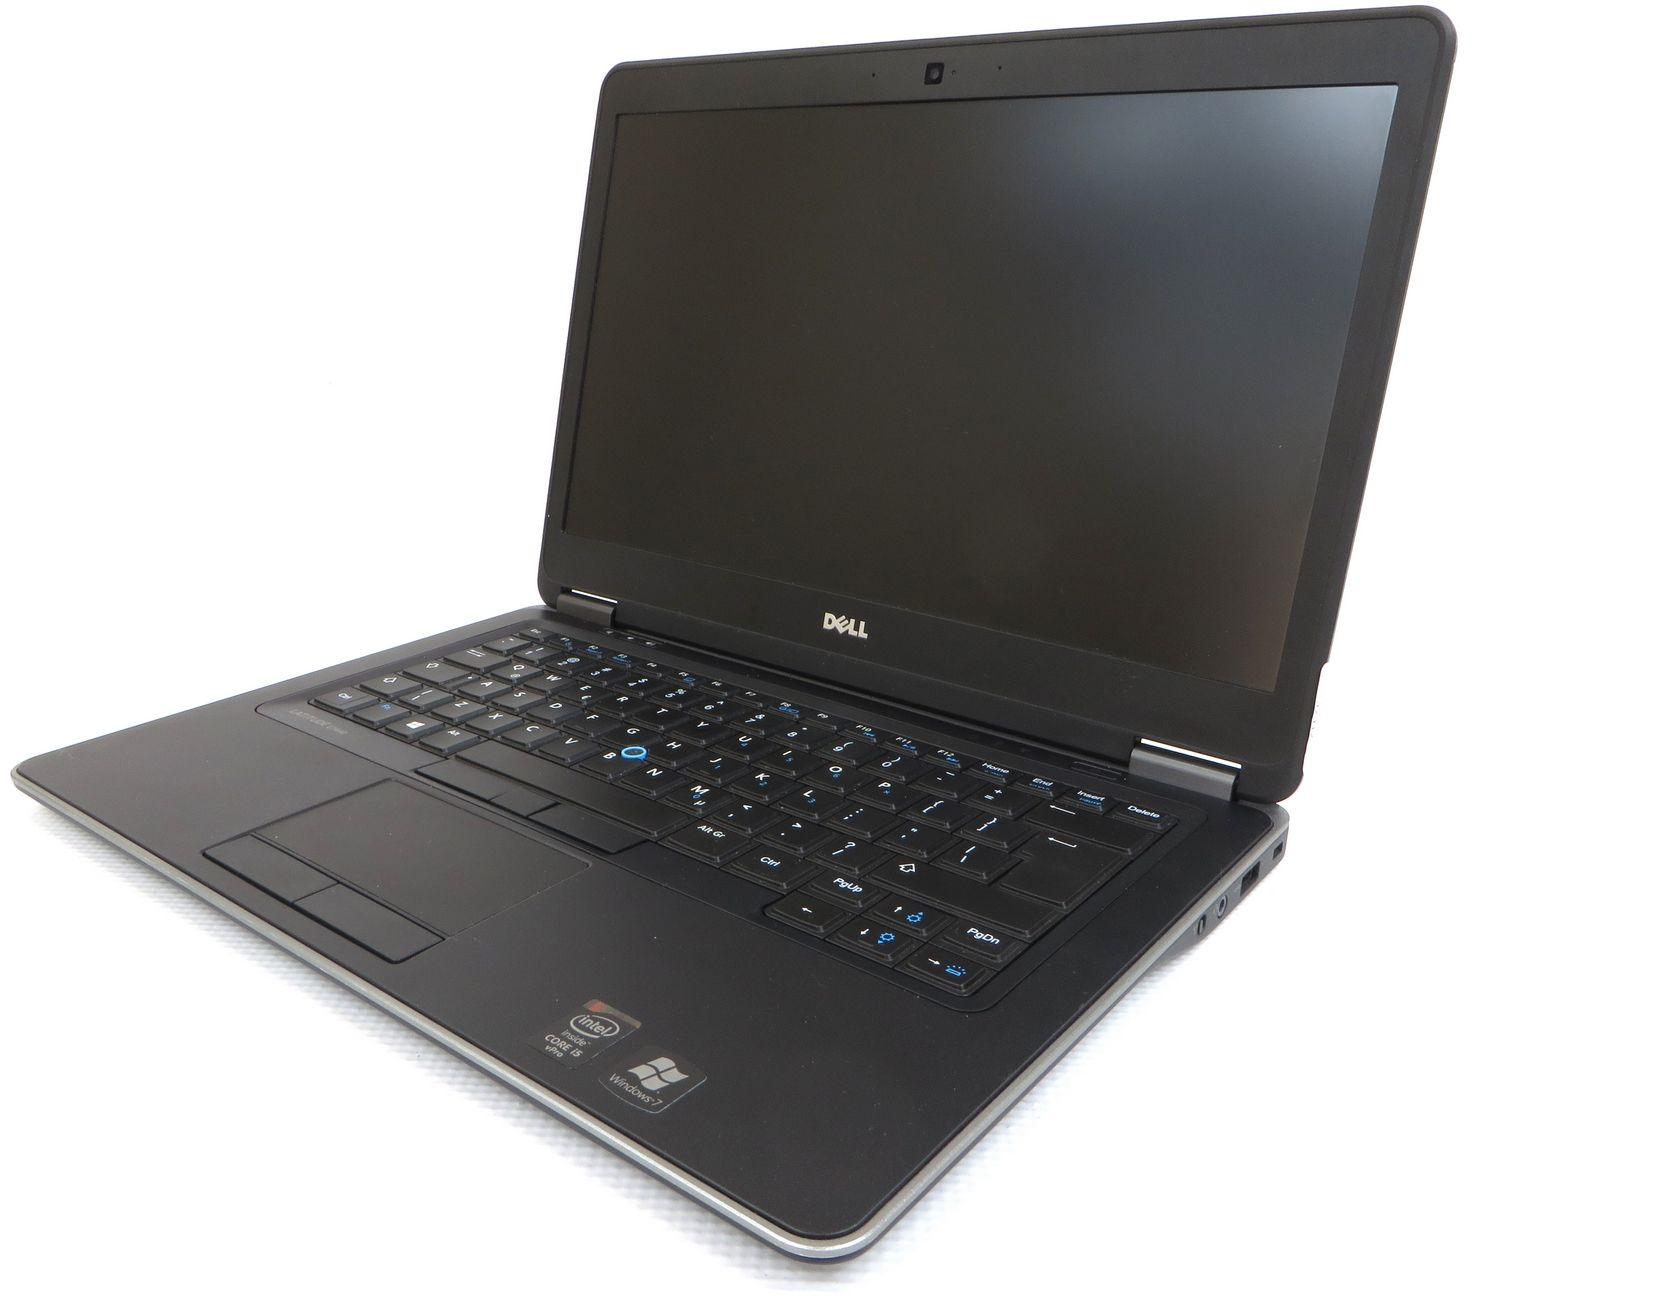 UltraBook DELL Latitude E7440 Full HD i5-4300U 2x 2.90GHz 8GB 120GB SSD HDMI Kamera Windows 7 Pro (Klasa A-)